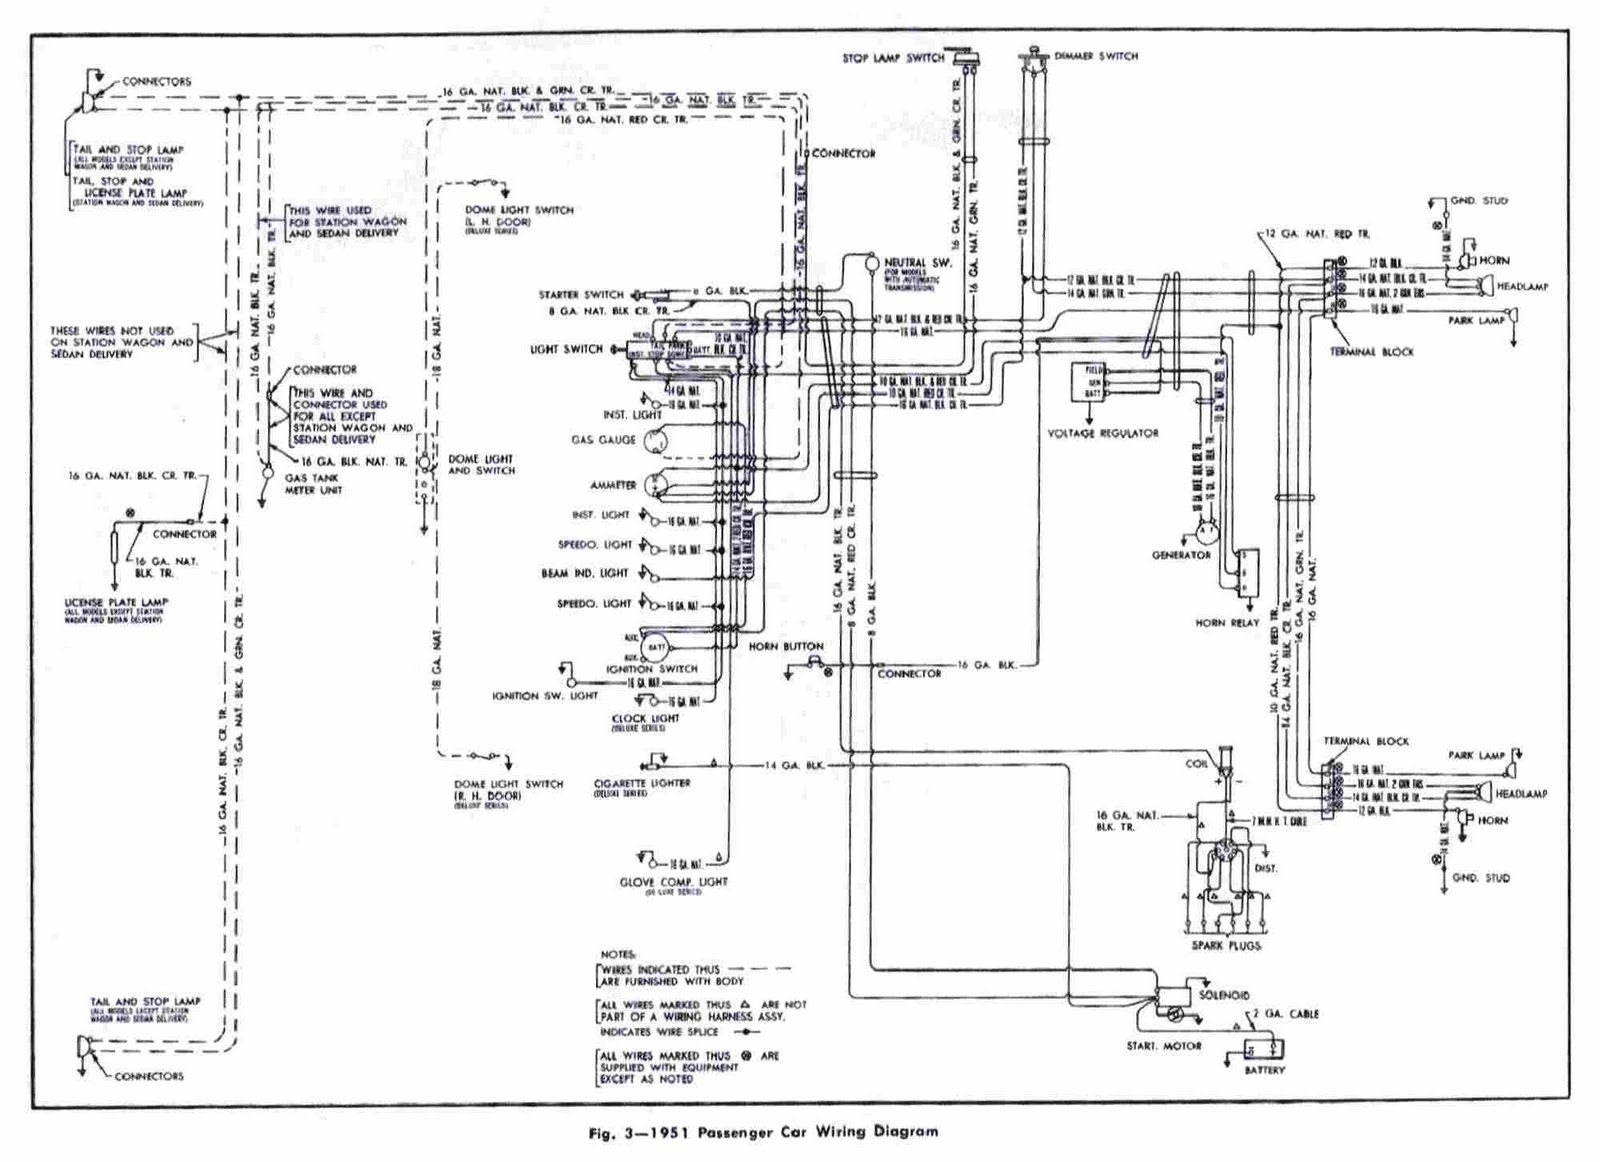 Chevrolet Passenger Car 1951 Wiring Diagram | All about ...